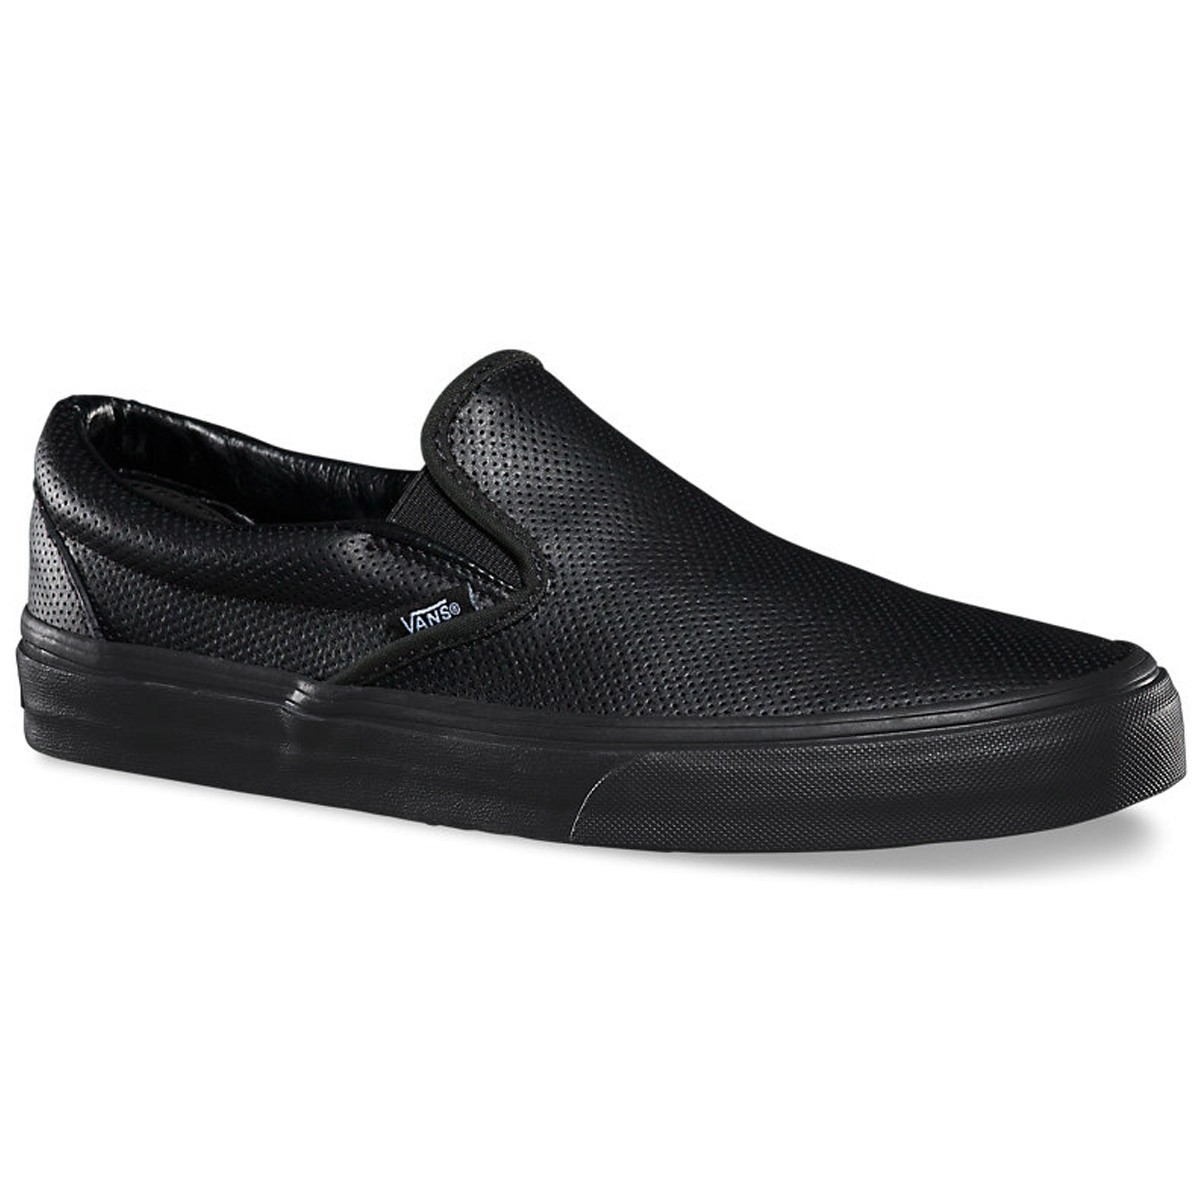 40416c78e4ad Vans Classic Slip-On Perforated Leather Shoes - Black Black - 3.5